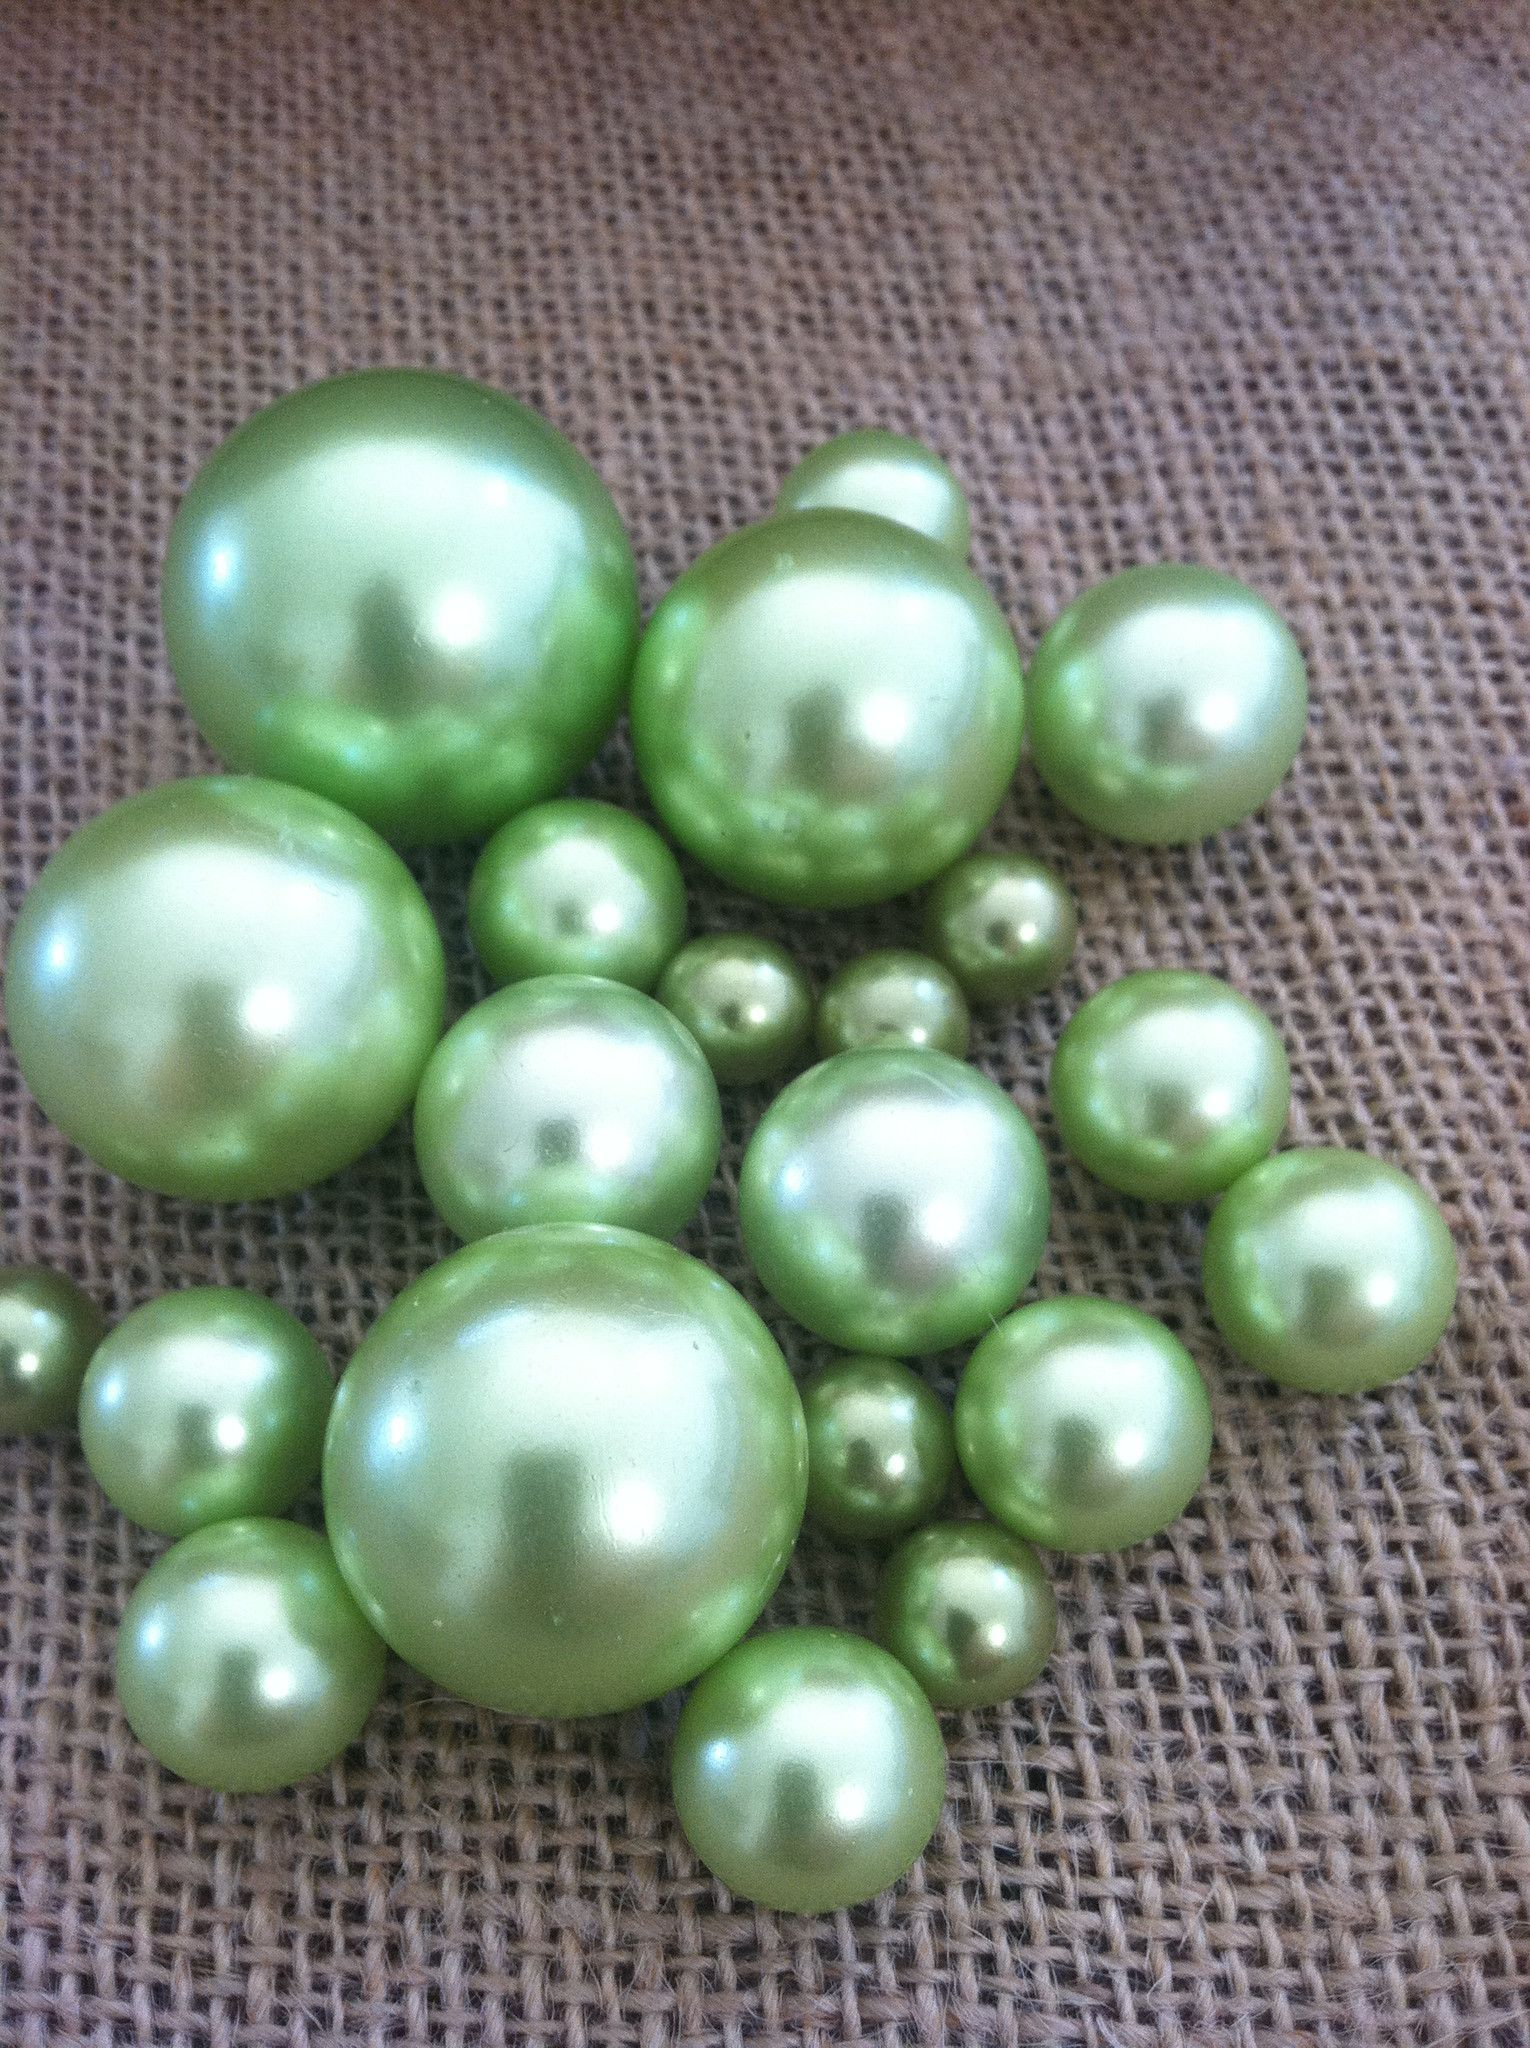 greens mystic pigments green pearl pearls solid black